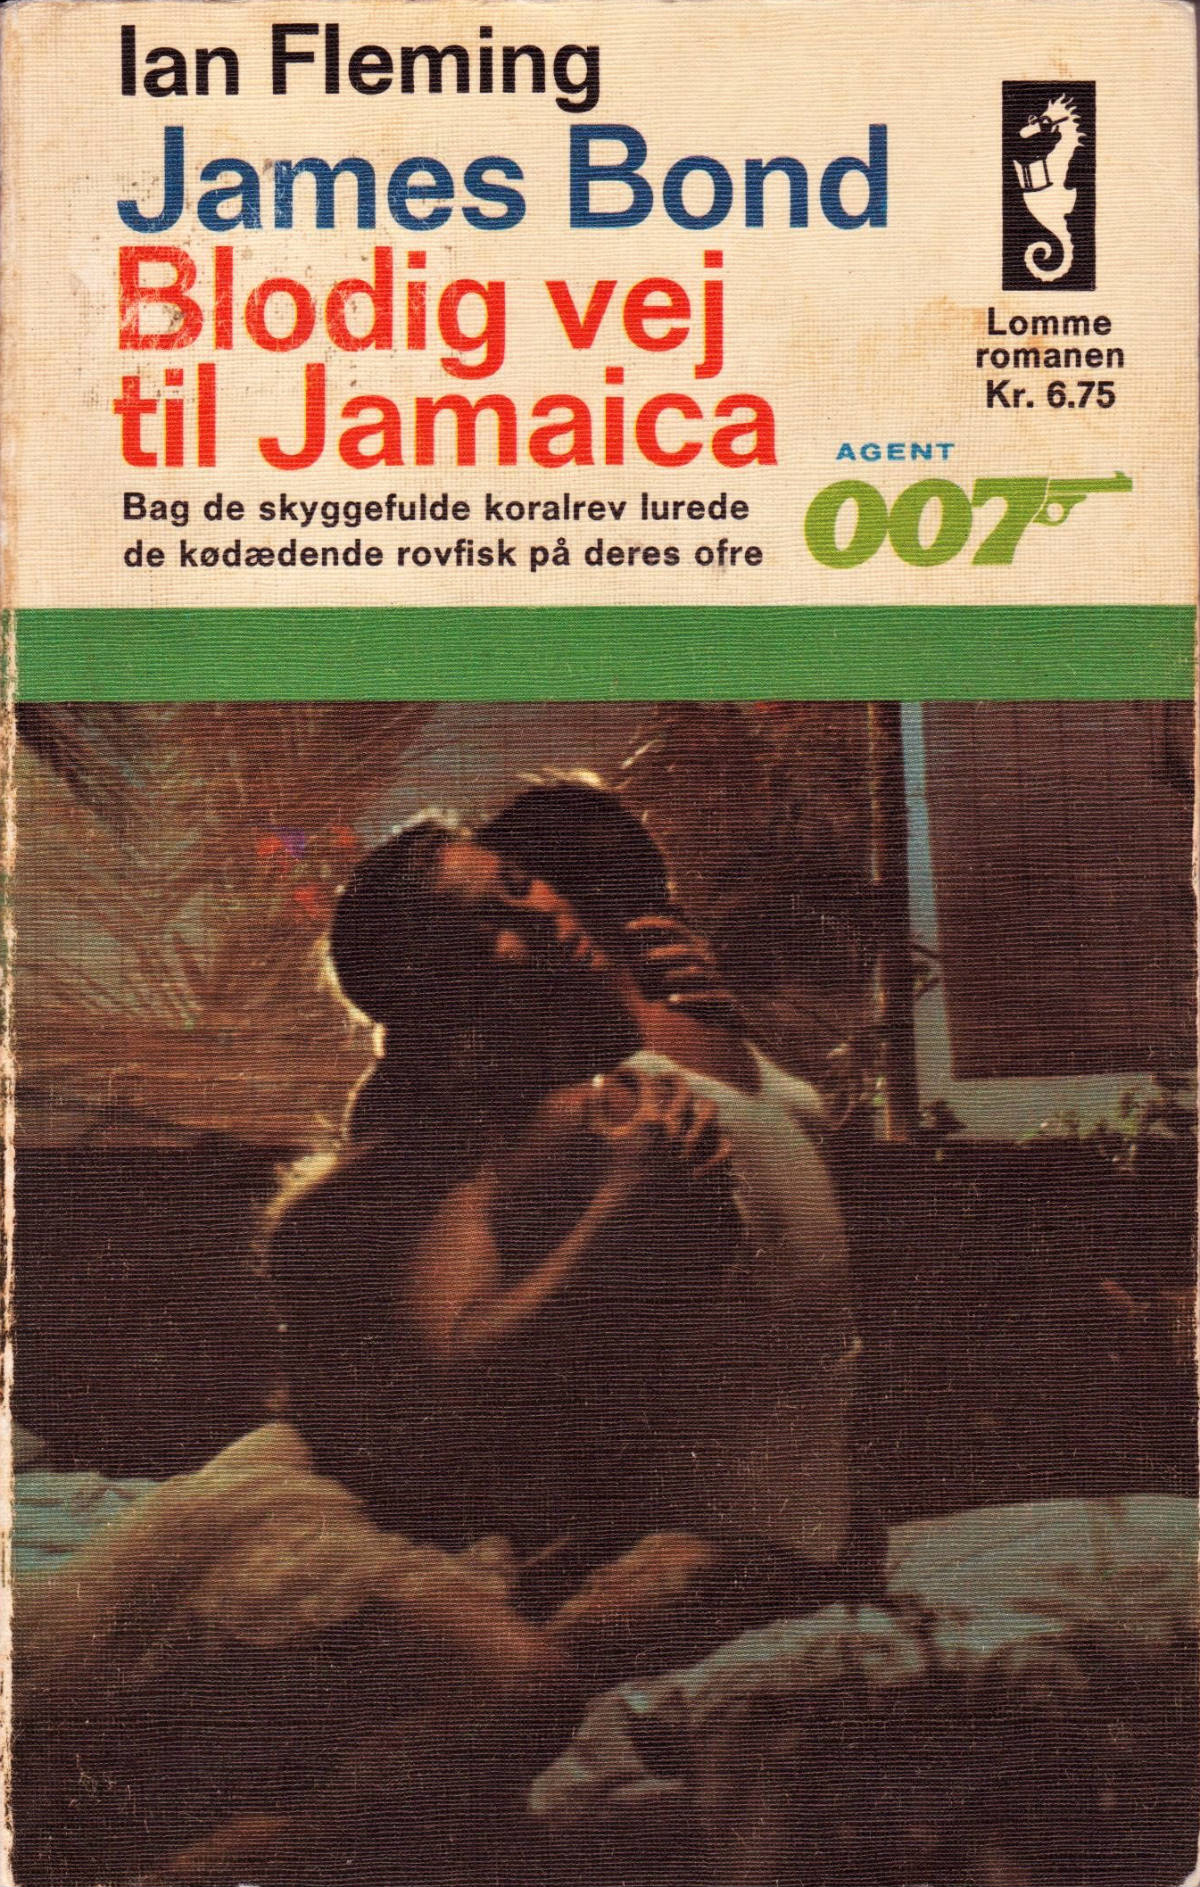 LALD Skrifola paperback 1965 for